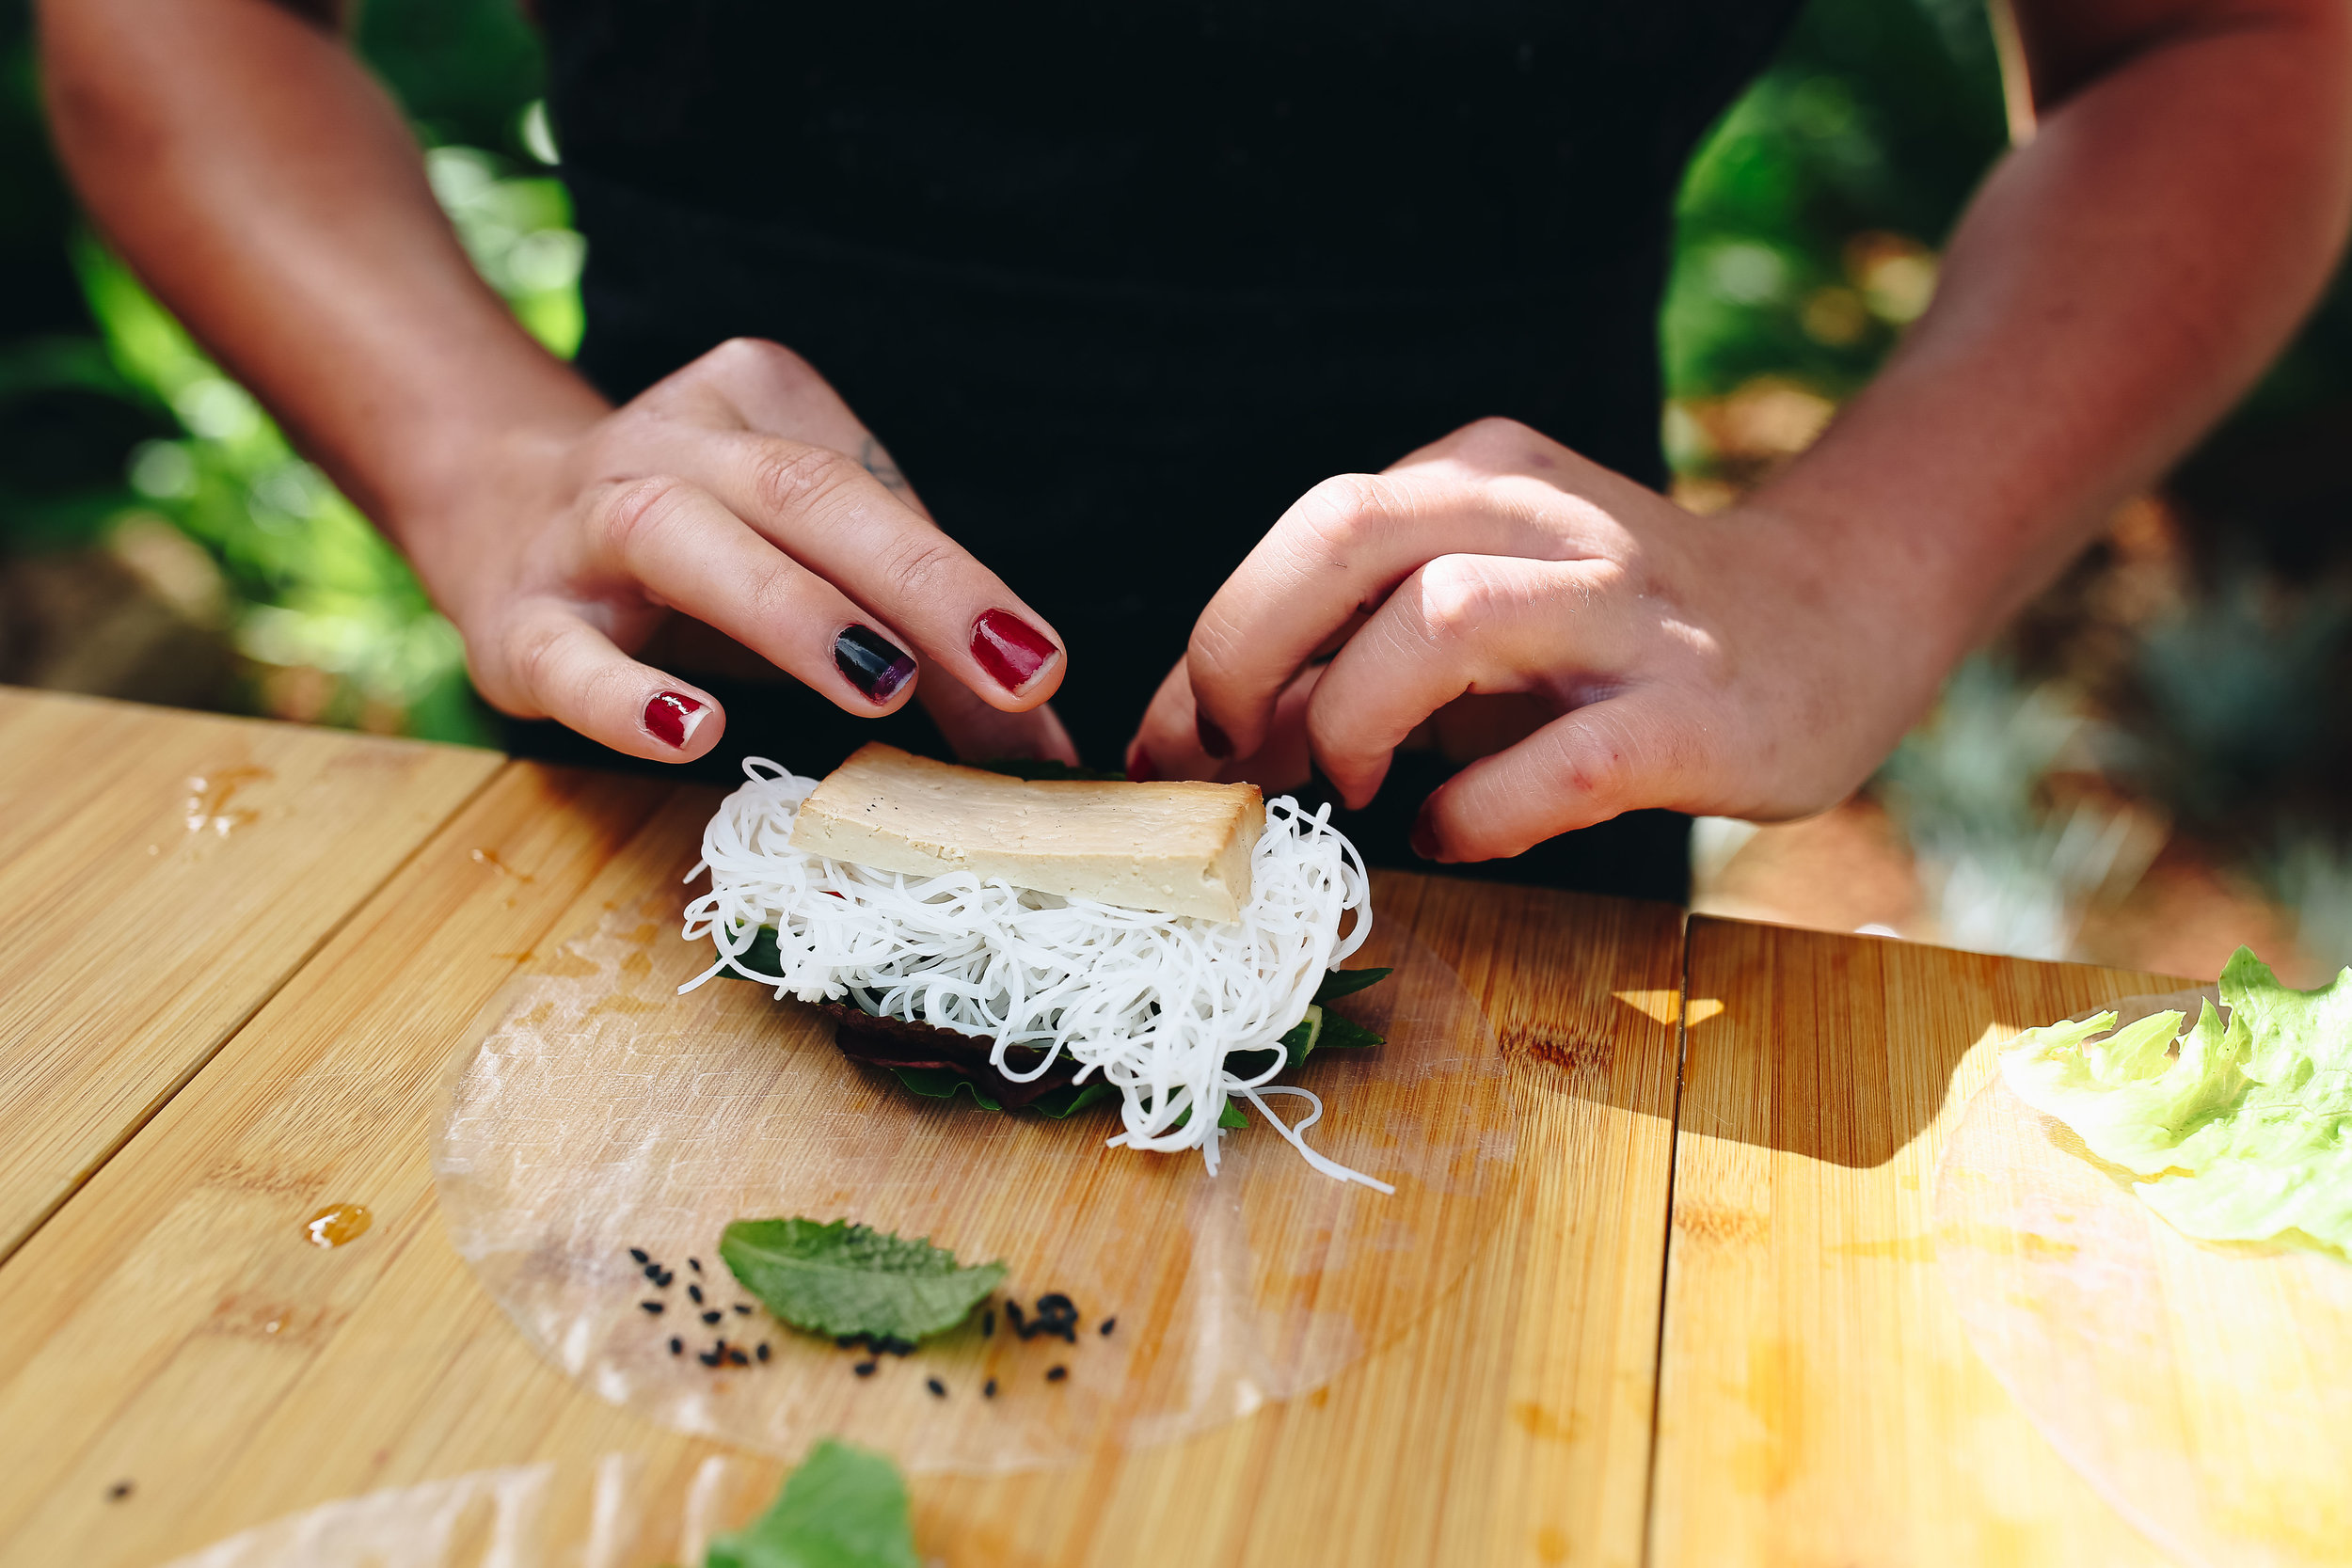 One of Julian's participants beginning to roll a perfectly portioned rice paper roll topped with rice noodles and smoked tofu.